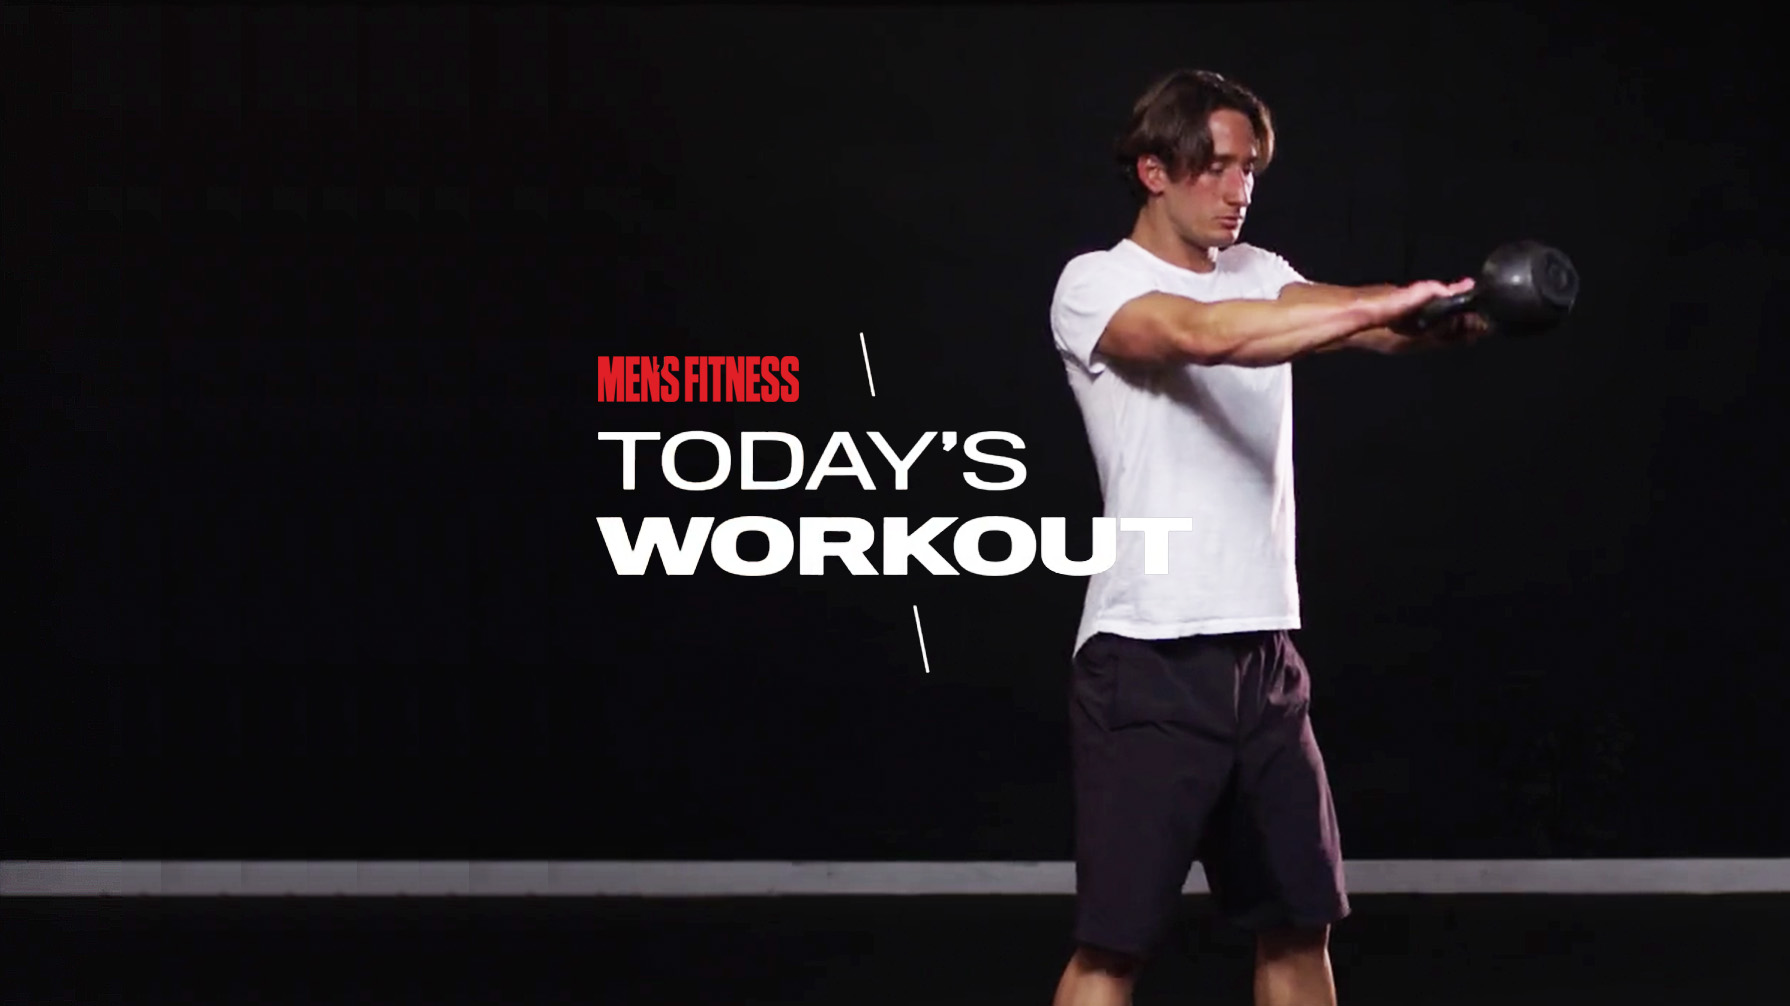 Today's Workout 69: The rapid-fire kettlebell routine to melt away fat